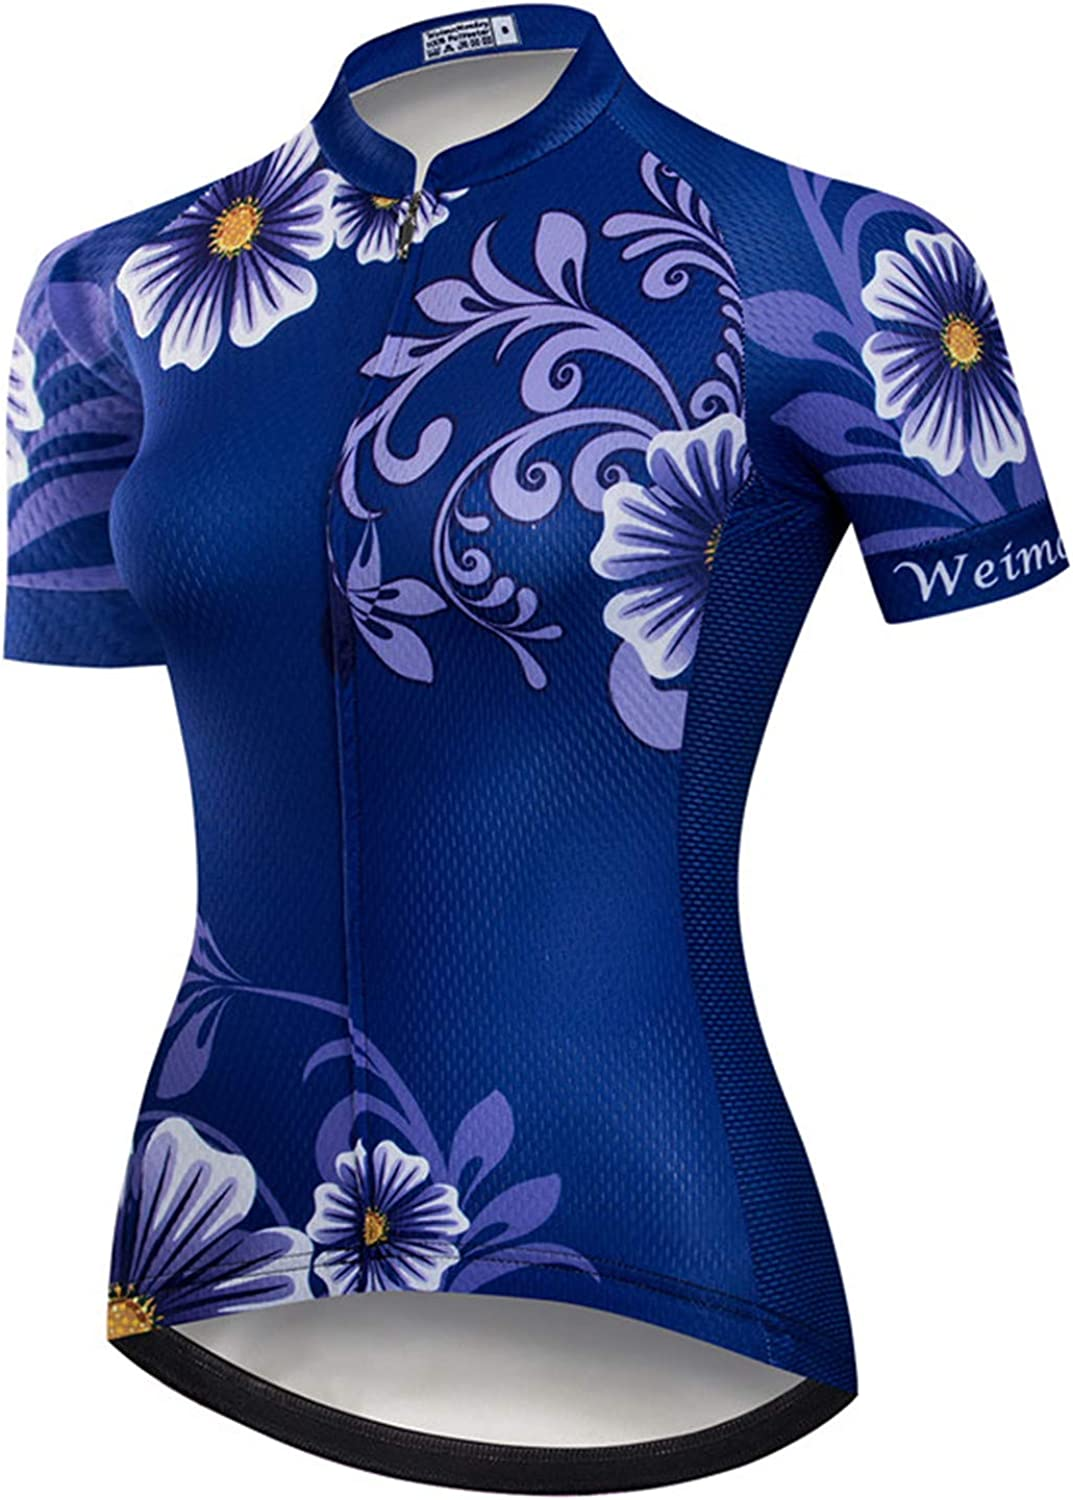 Cycling Wholesale Jersey Women Short Sleeve Team Jacke Complete Free Shipping Shirts Bicycle Bike